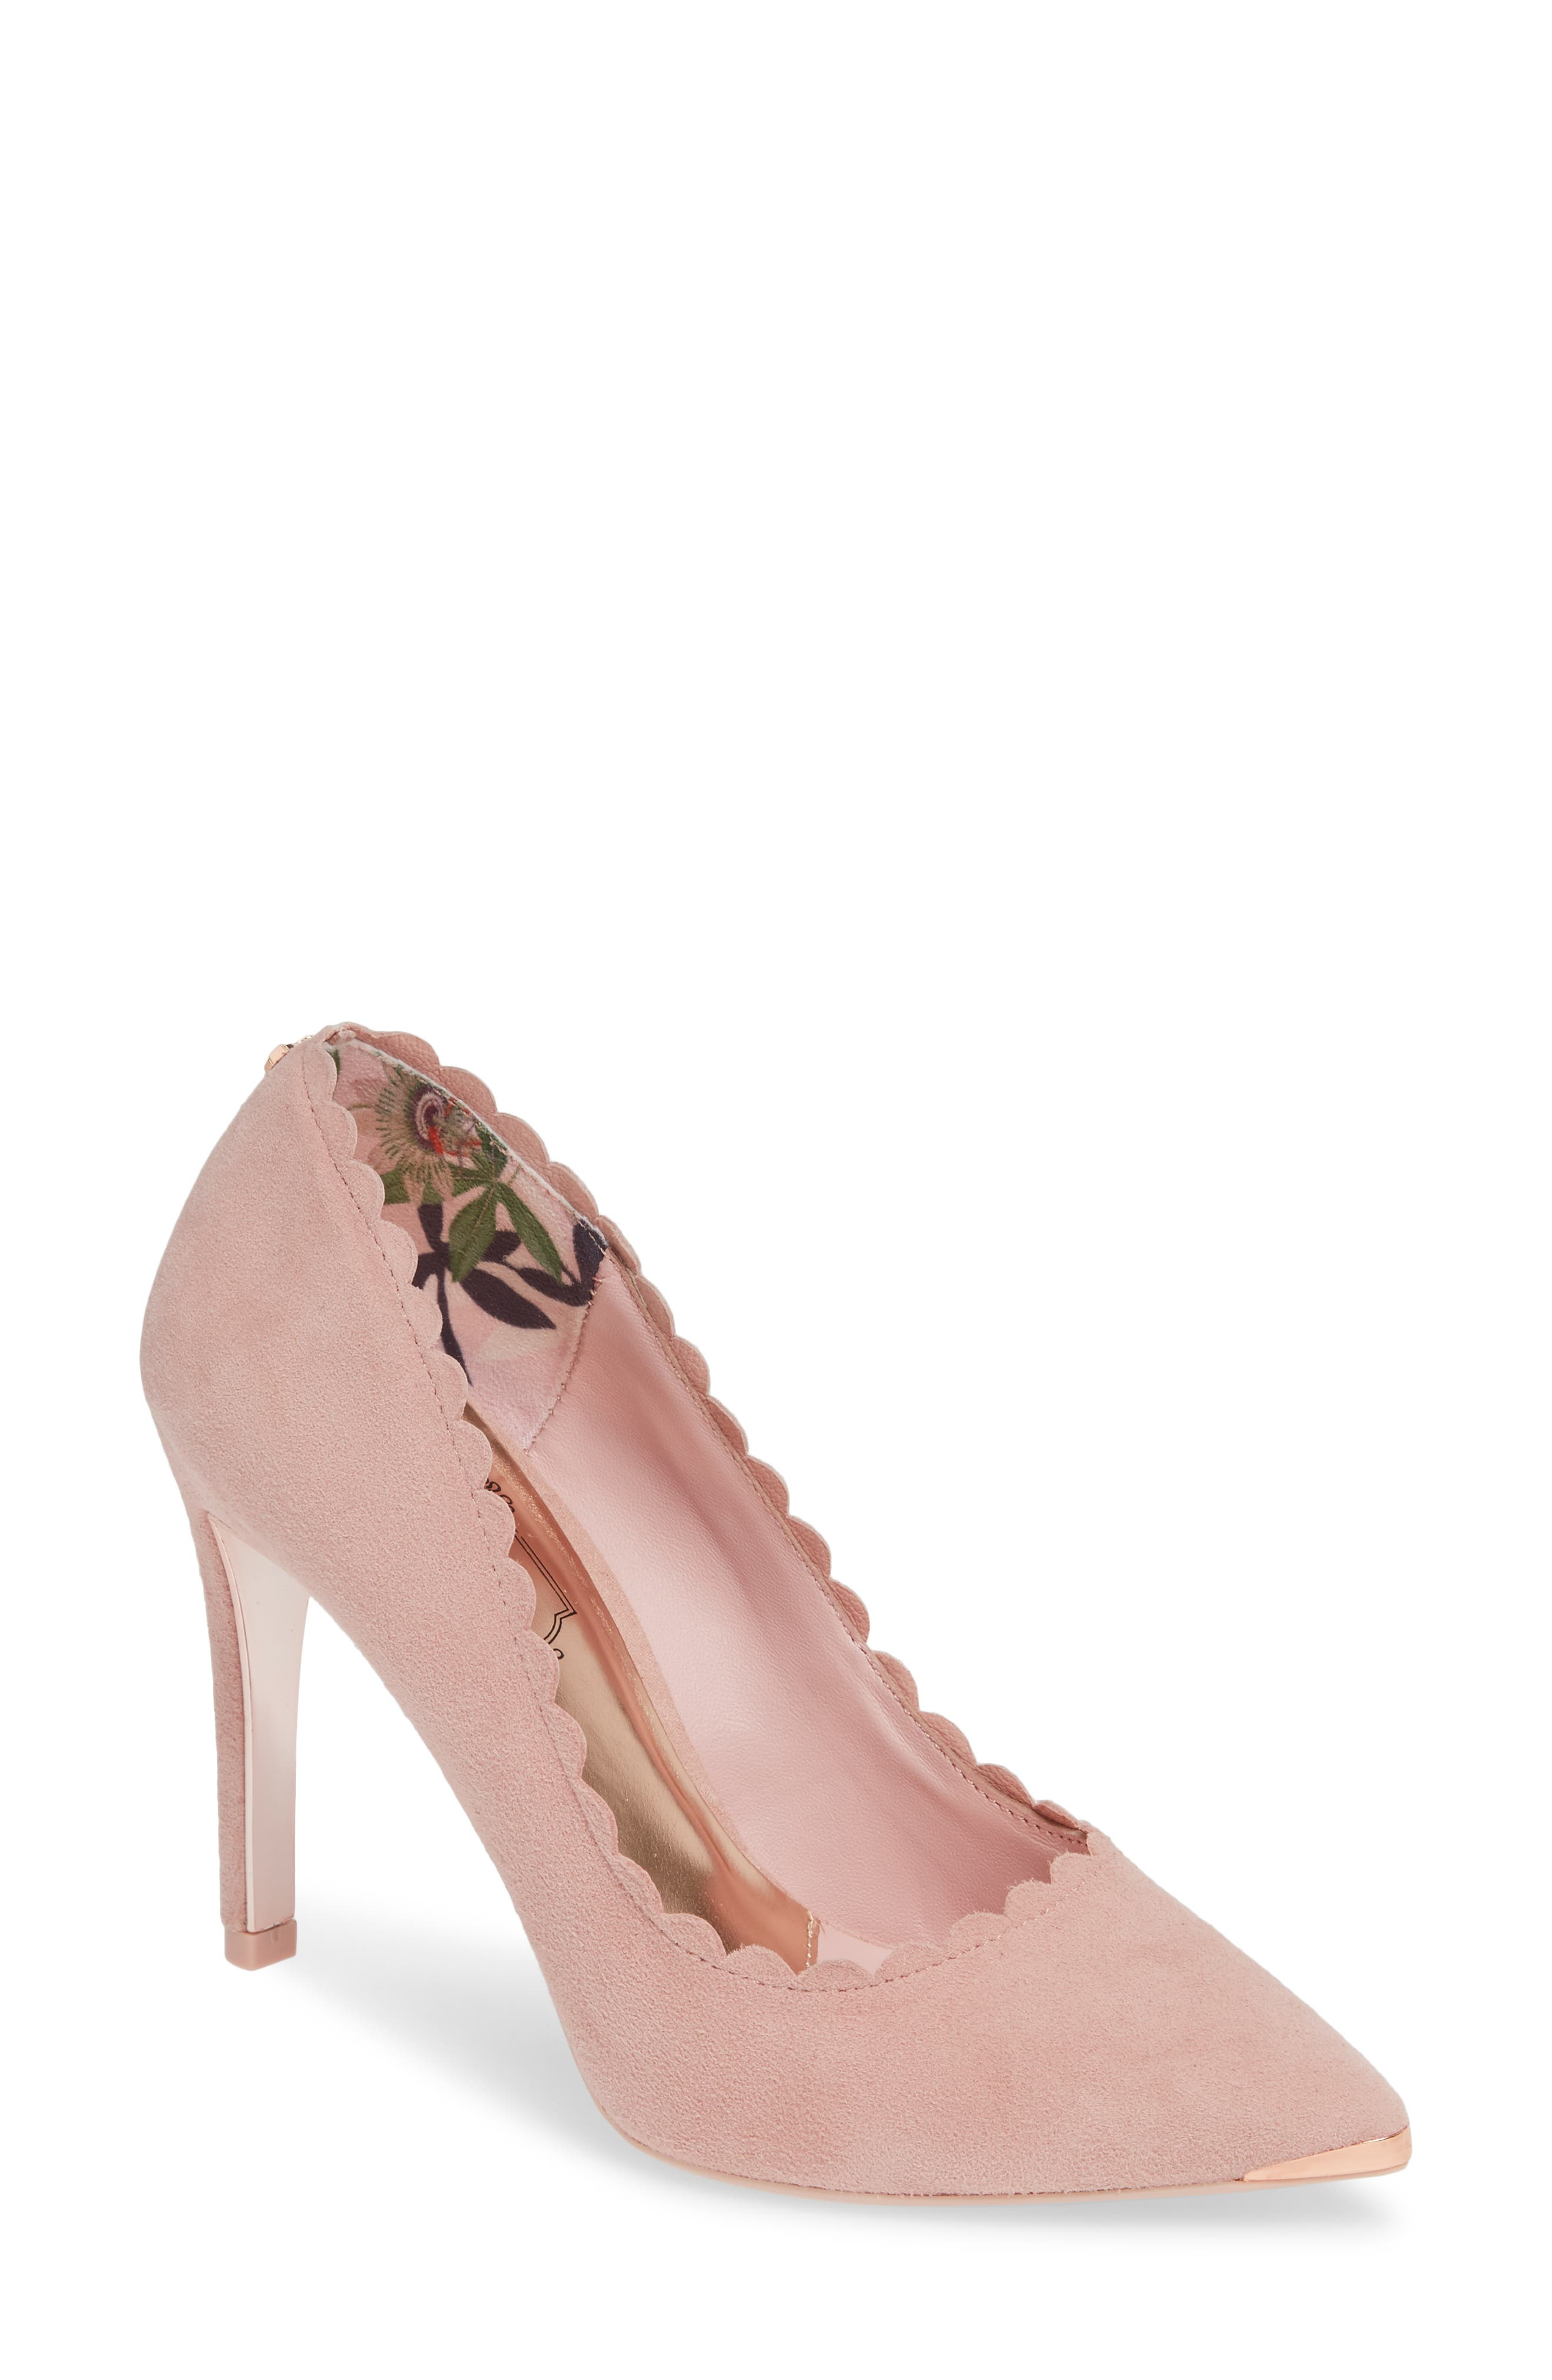 Sloana Pointy Toe Pump, Main, color, PINK BLOSSOM SUEDE